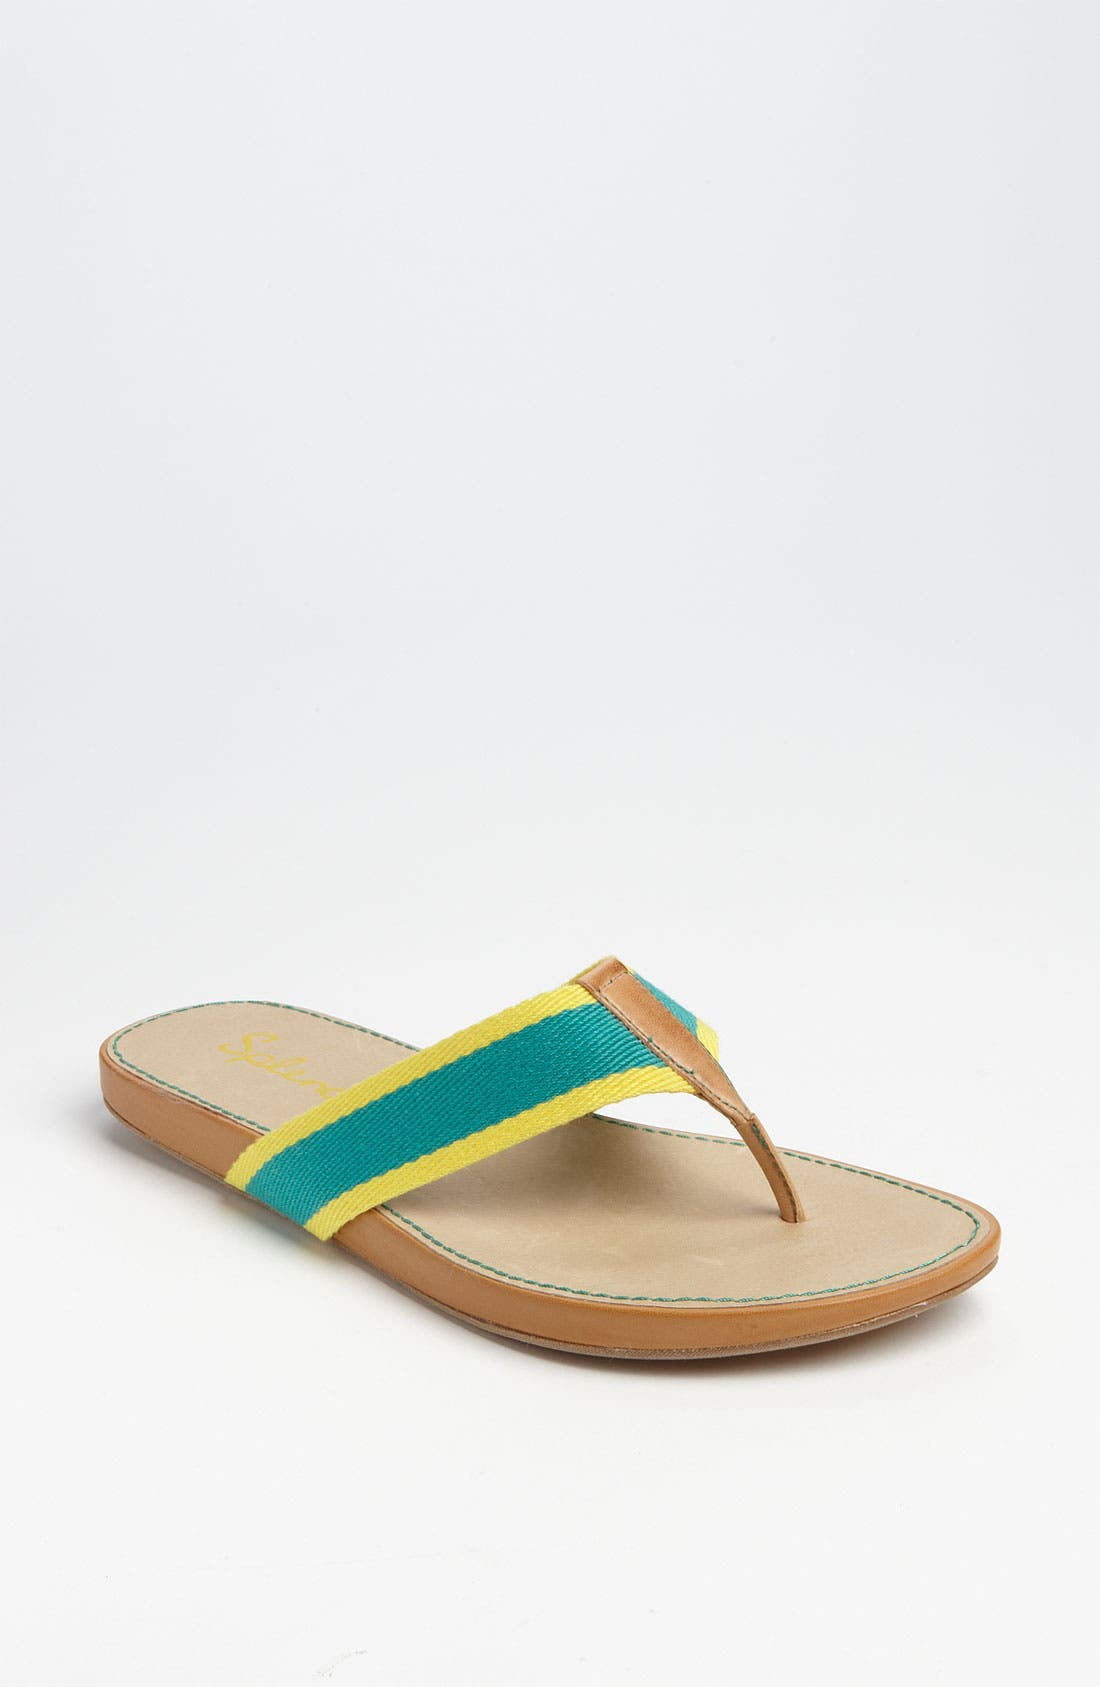 Alternate Image 1 Selected - Splendid 'Laki' Sandal